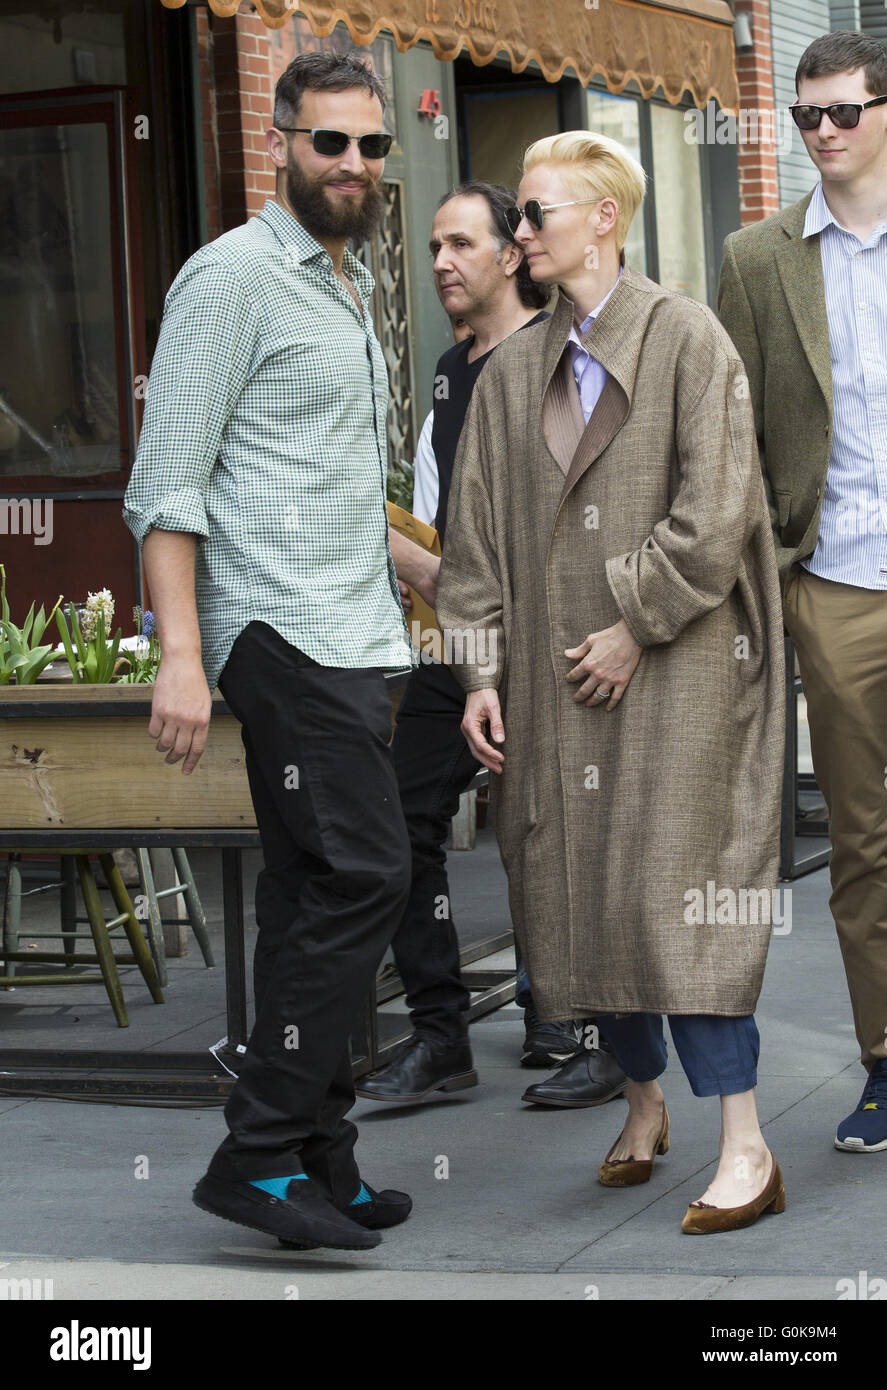 Tilda Swinton And Sandro Kopp Out And About In New York City Stock Photo Alamy